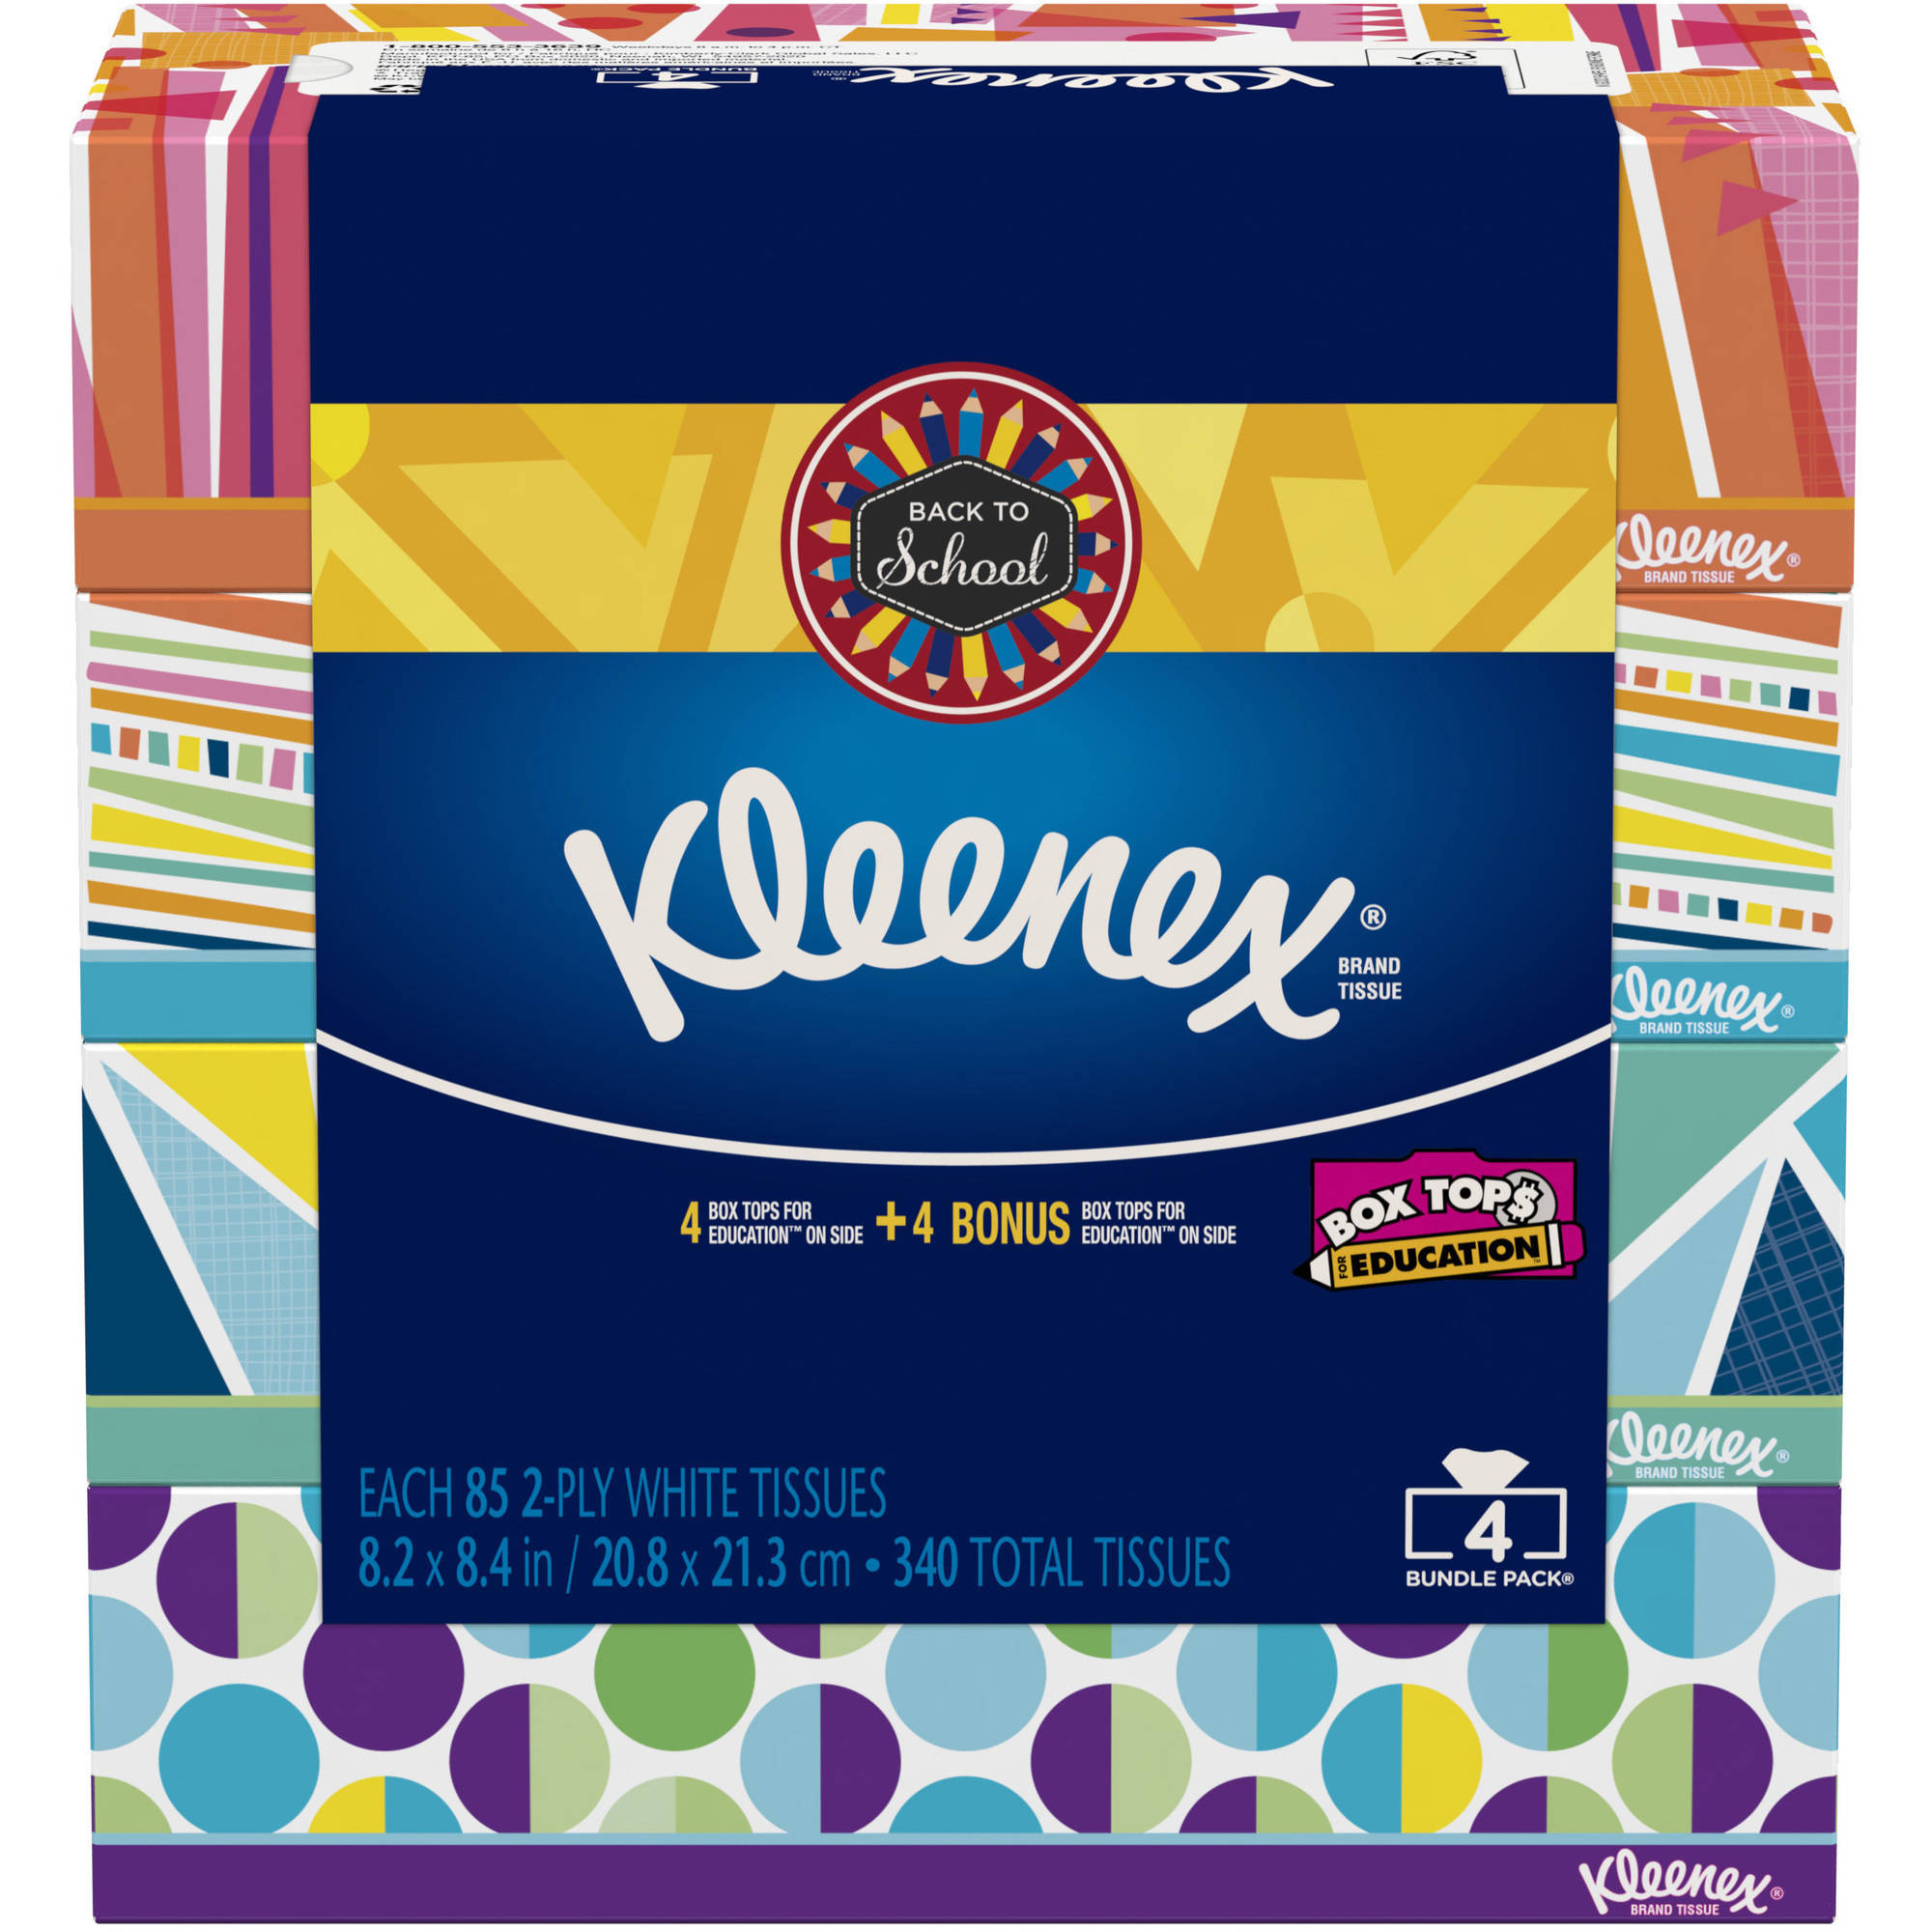 Kleenex Everyday Facial Tissues, 85 sheets, 4 count